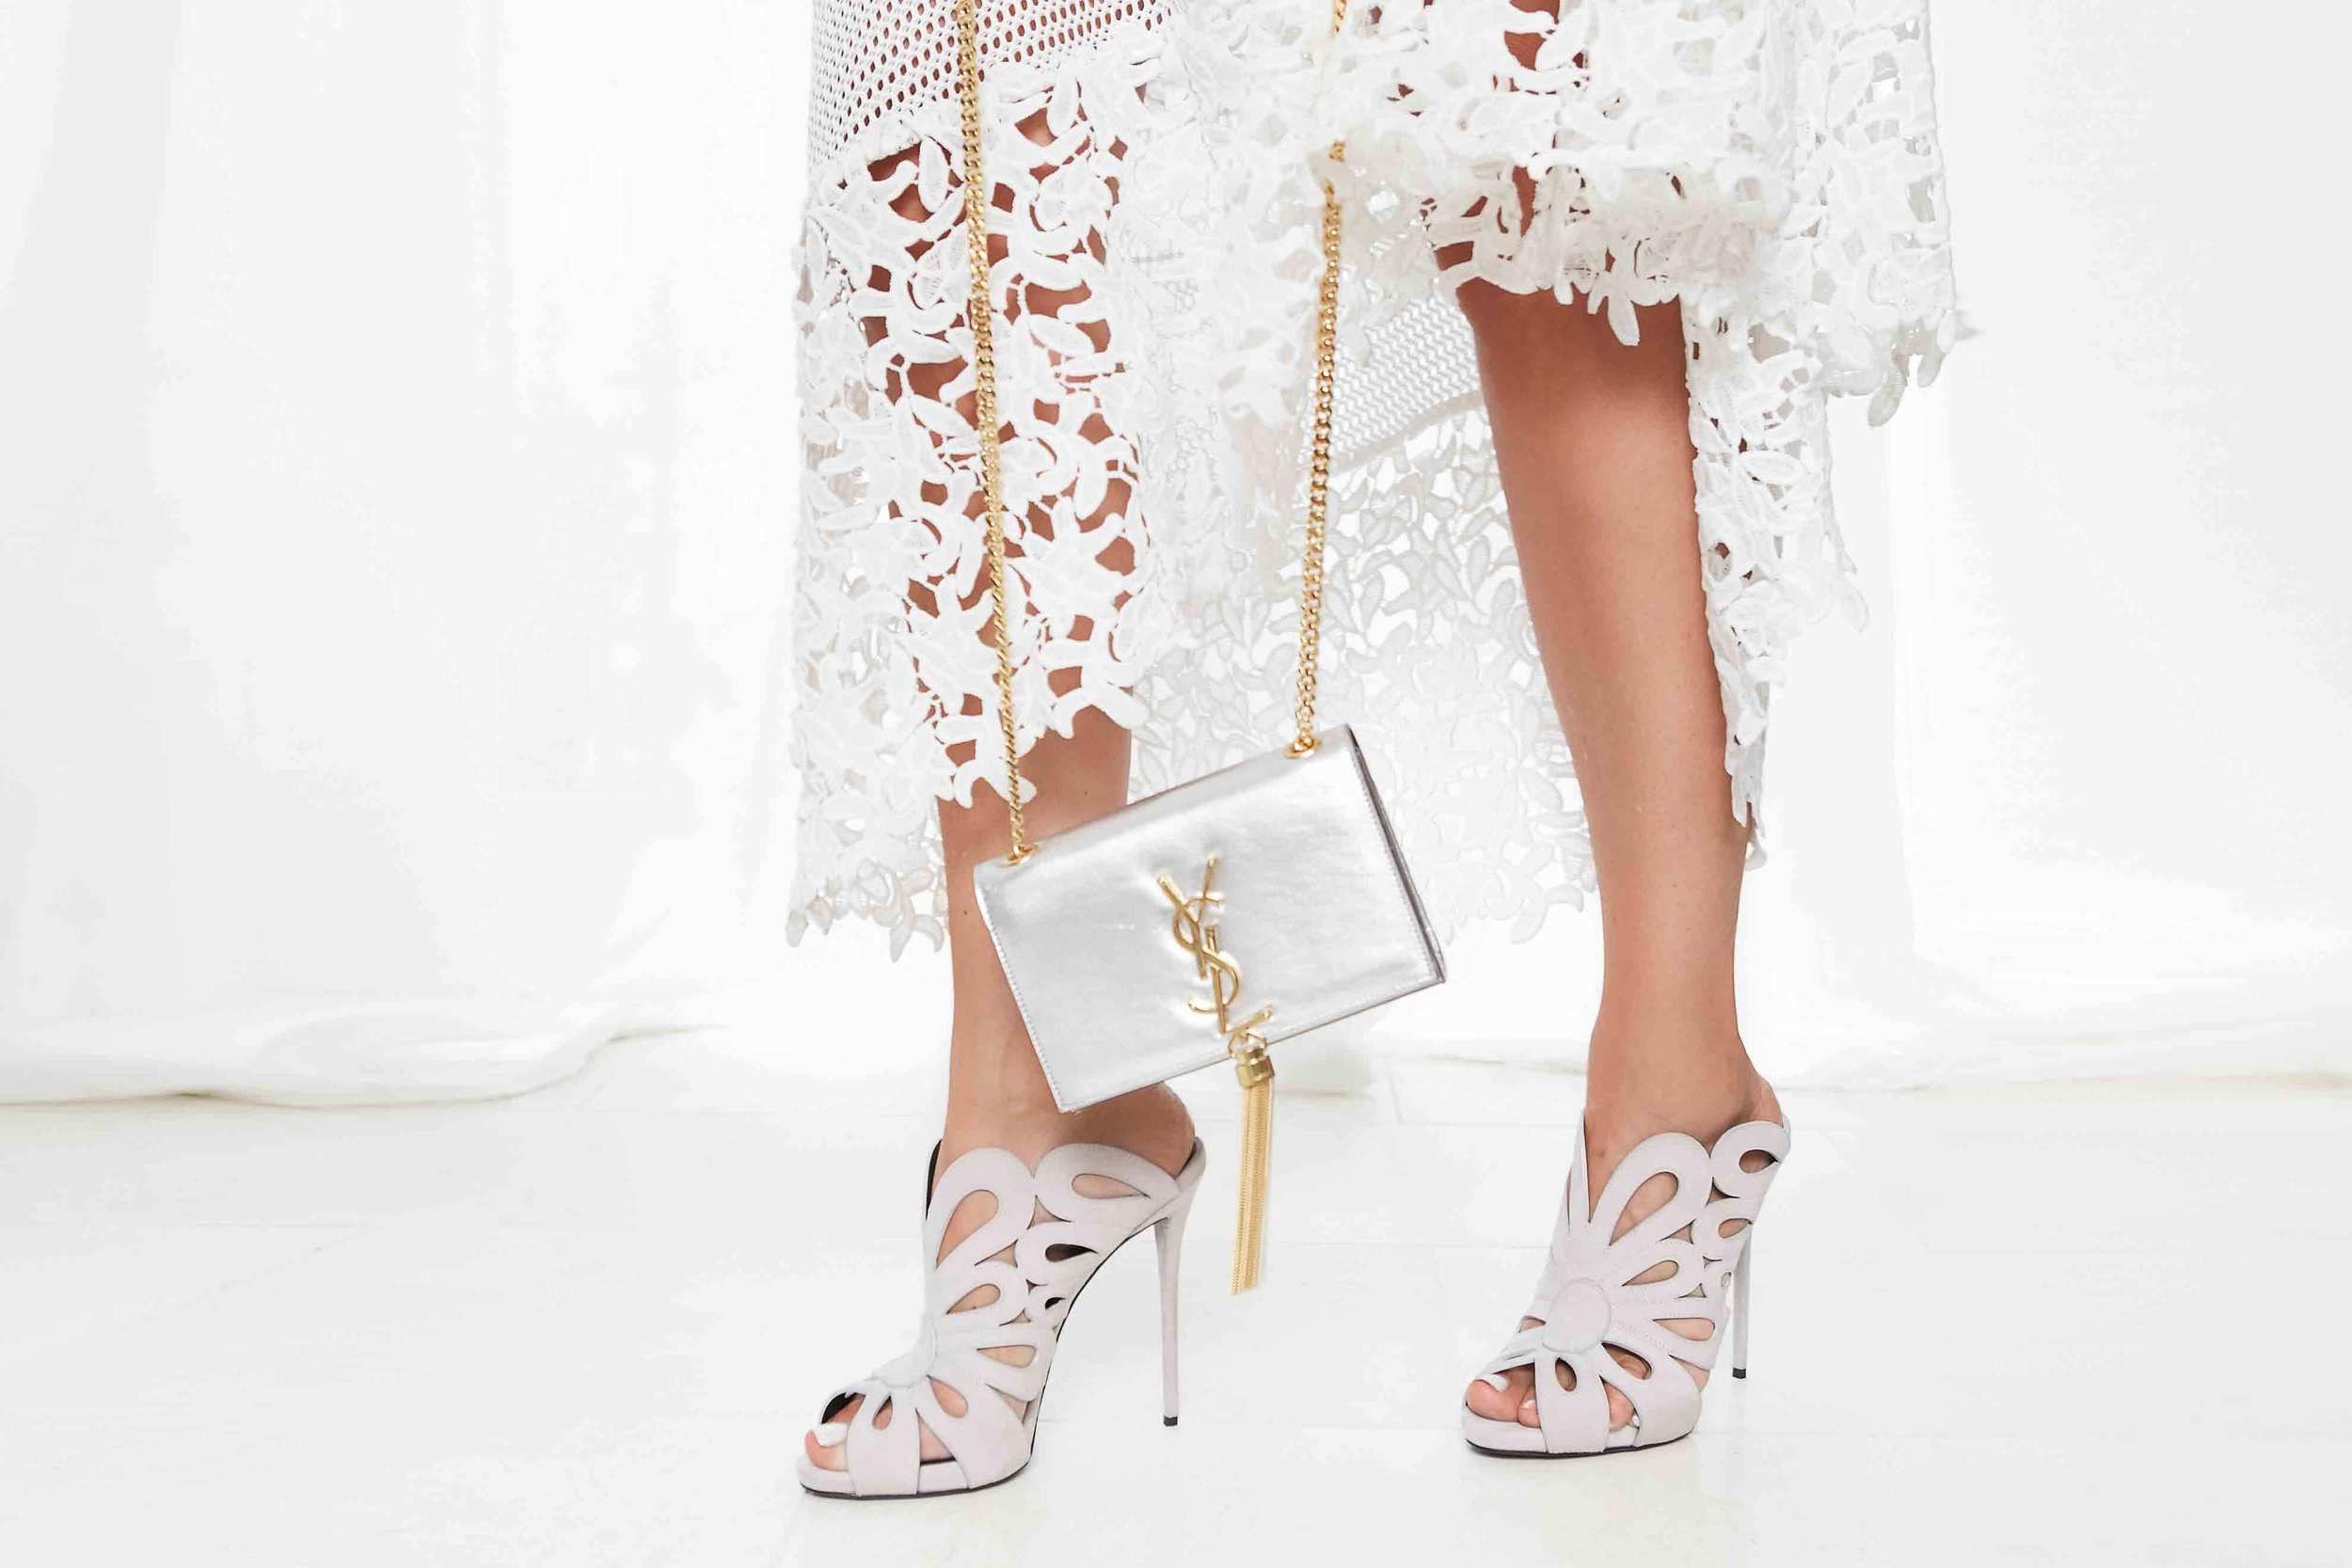 Seagulls of St Kilda Lace Dress with Balenciaga Cut Out Mule and Saint Laurent Mini Chain Tassel Bag